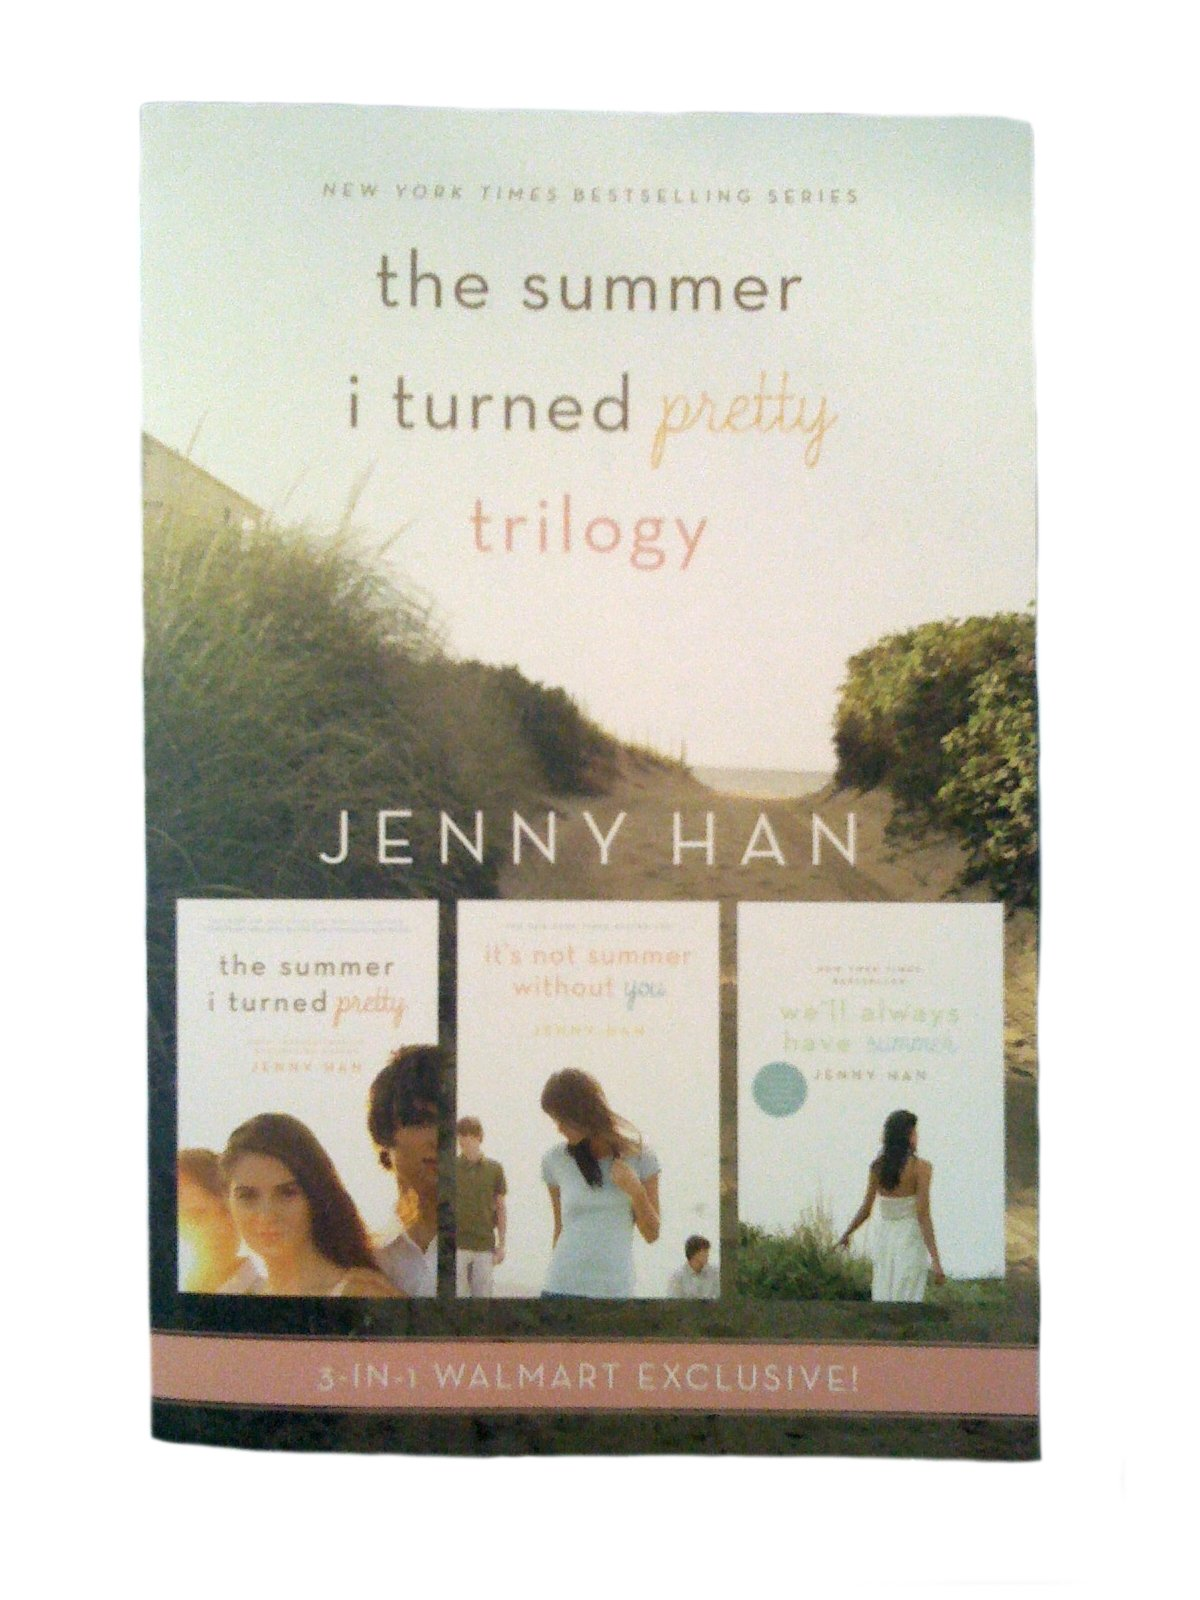 The Summer I Turned Pretty Trilogy Amazon Co Uk Jennyhan 9781442499713 Books